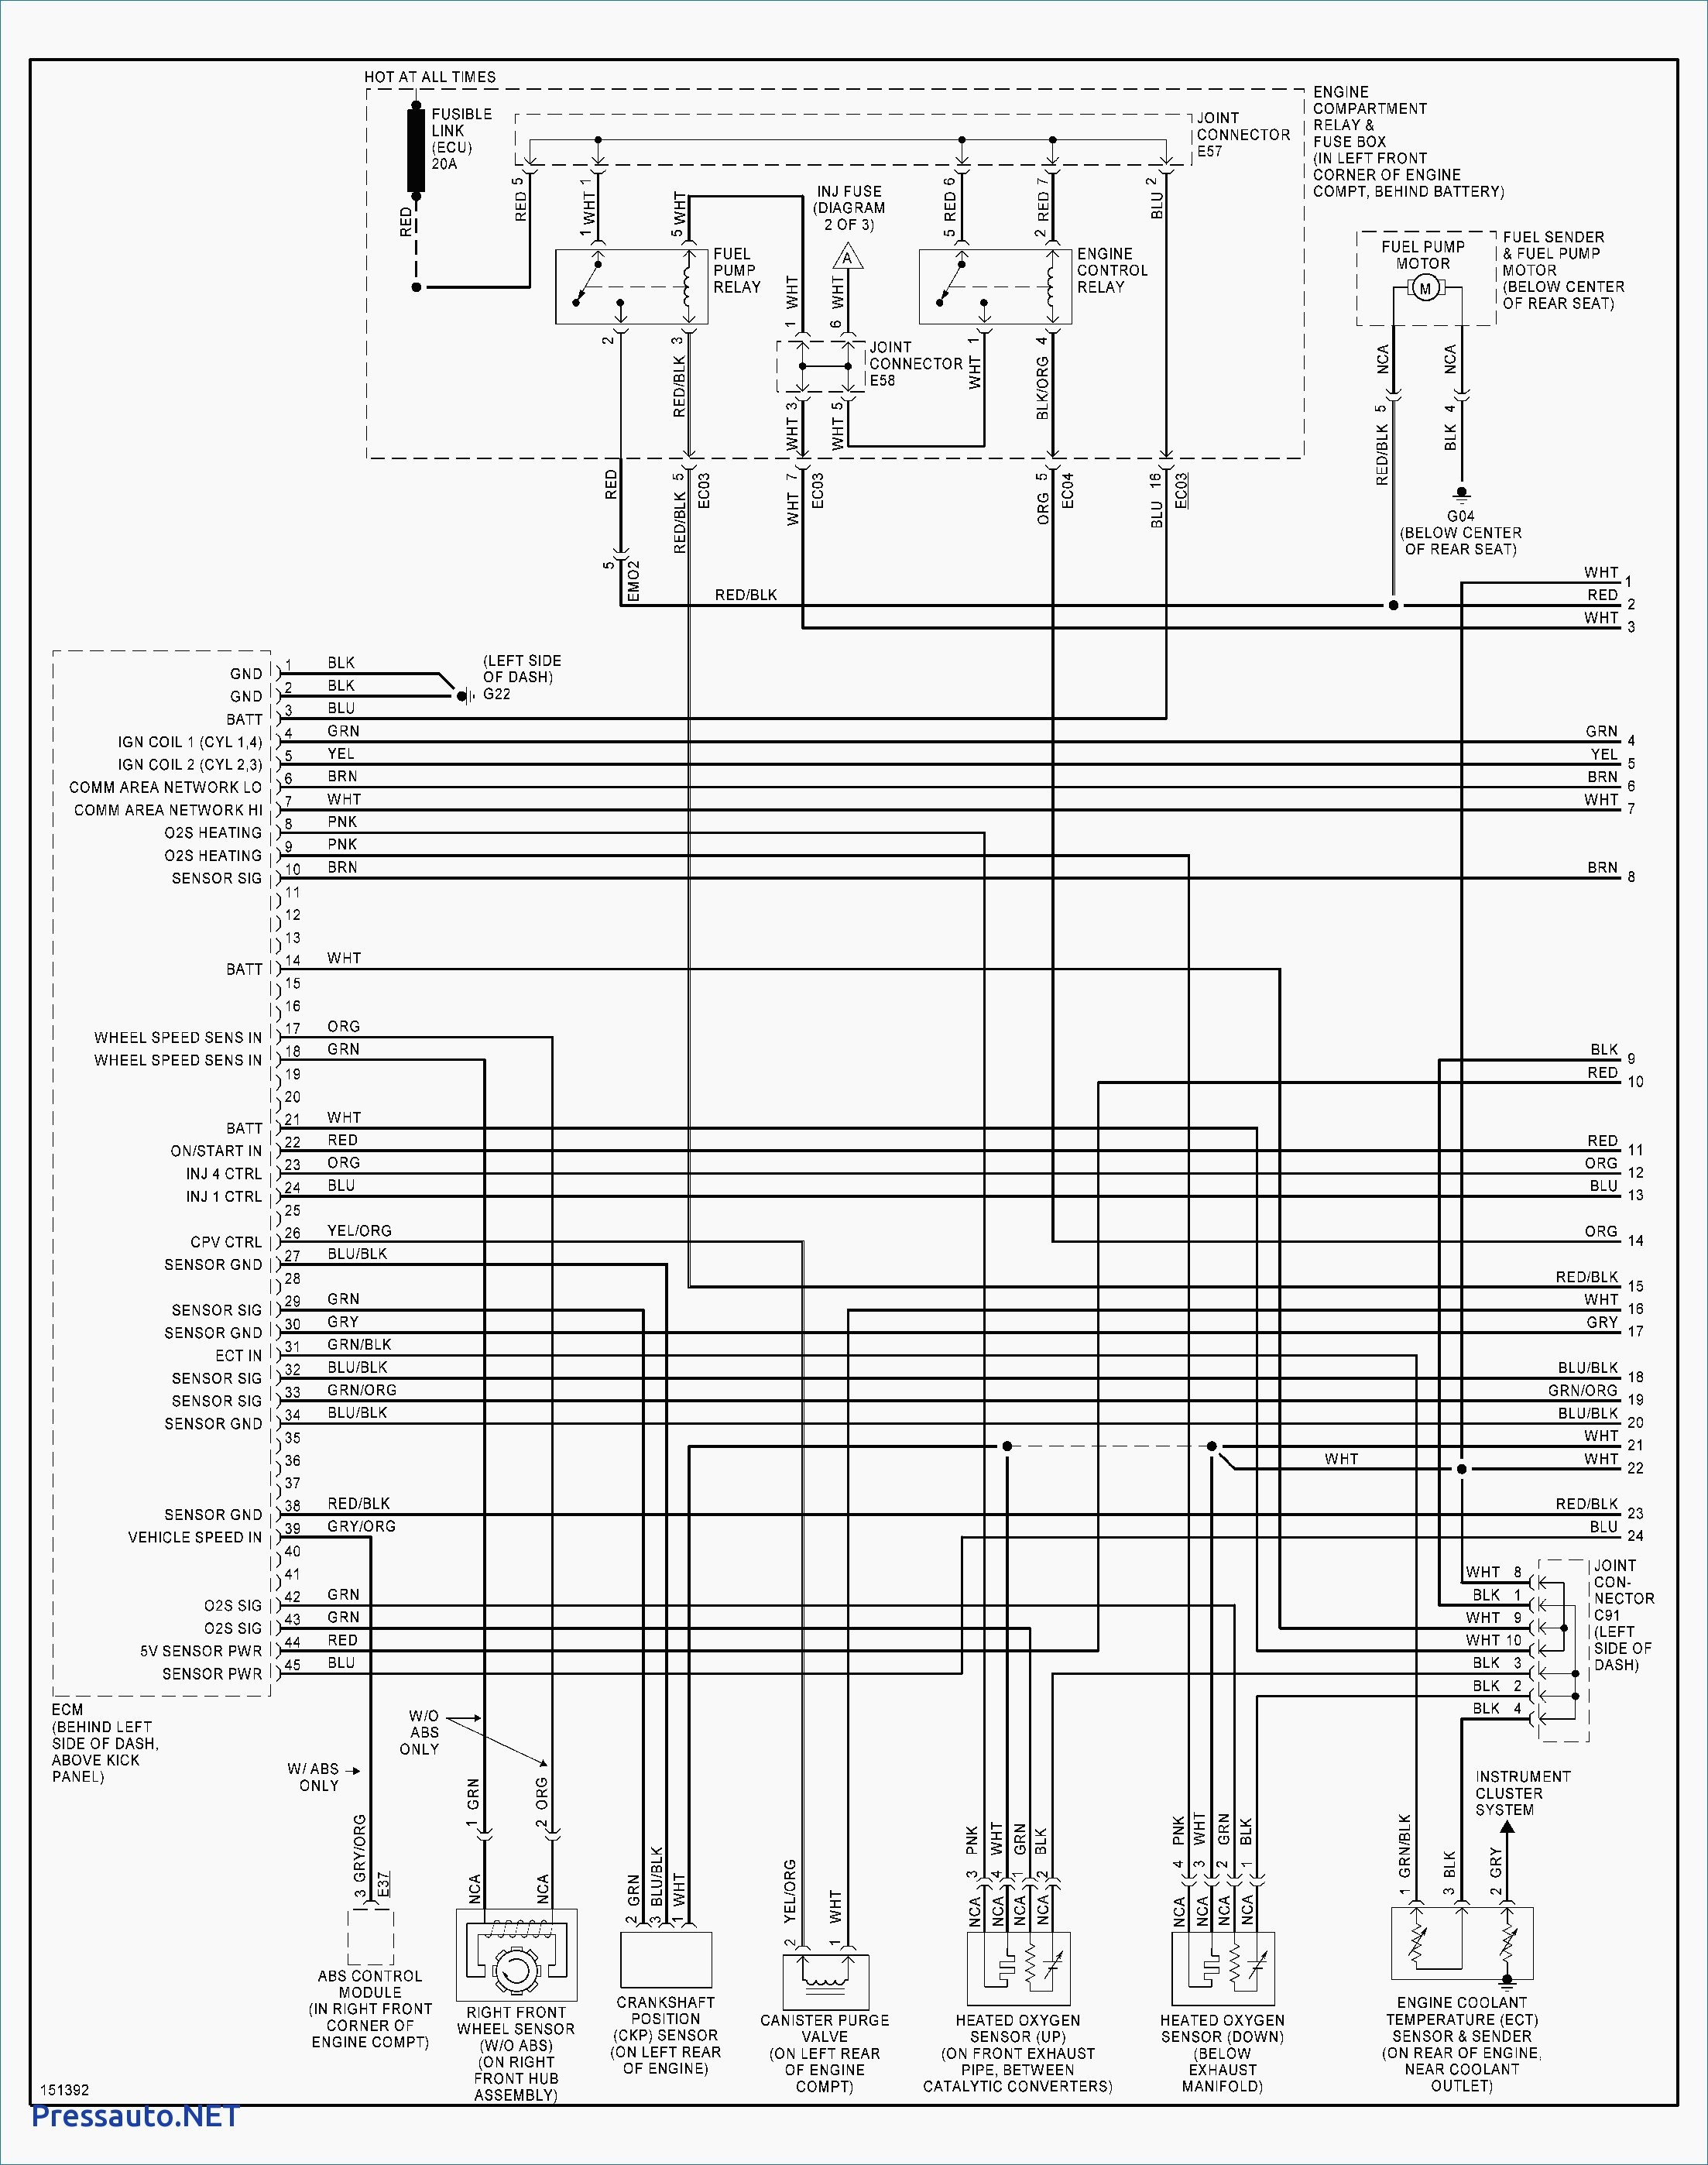 2004 Hyundai Santa Fe Engine Diagram Unique Hyundai Wiring Diagrams Free Diagram Of 2004 Hyundai Santa Fe Engine Diagram